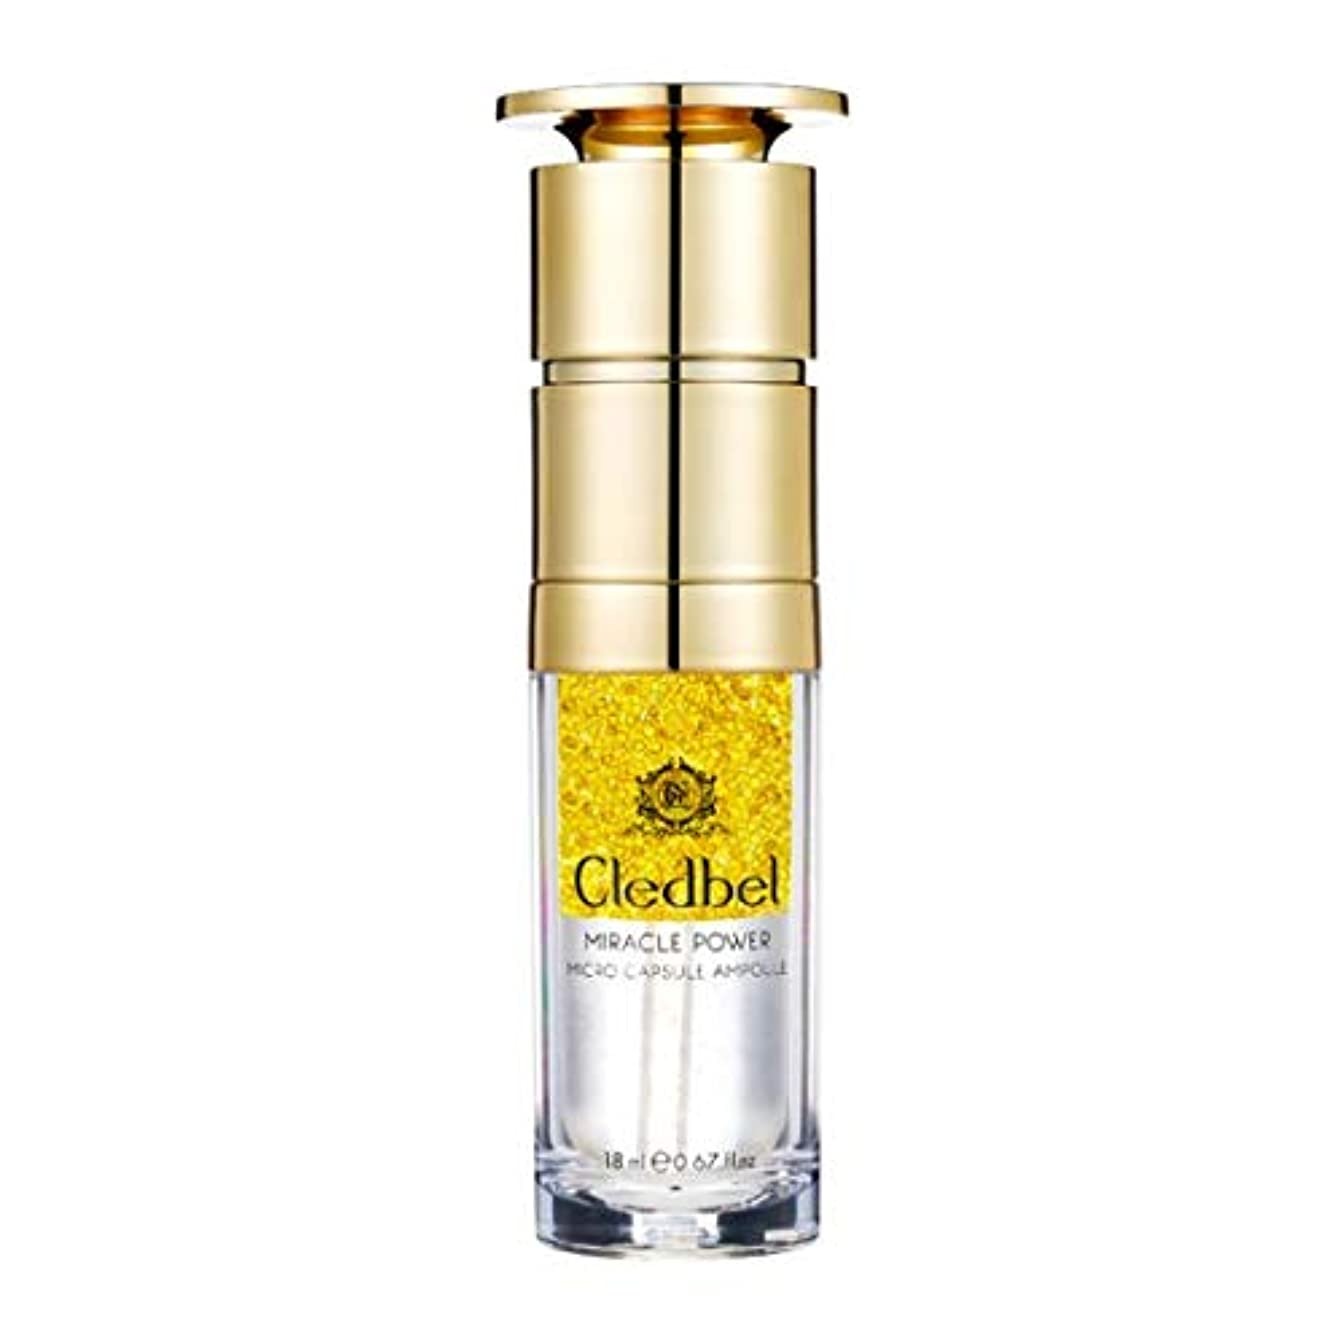 [cledbel] Miracle Power Micro Capsule Ampoule 18ml / ミラクルパワーマイクロカプセルアンプル 18ml [並行輸入品]